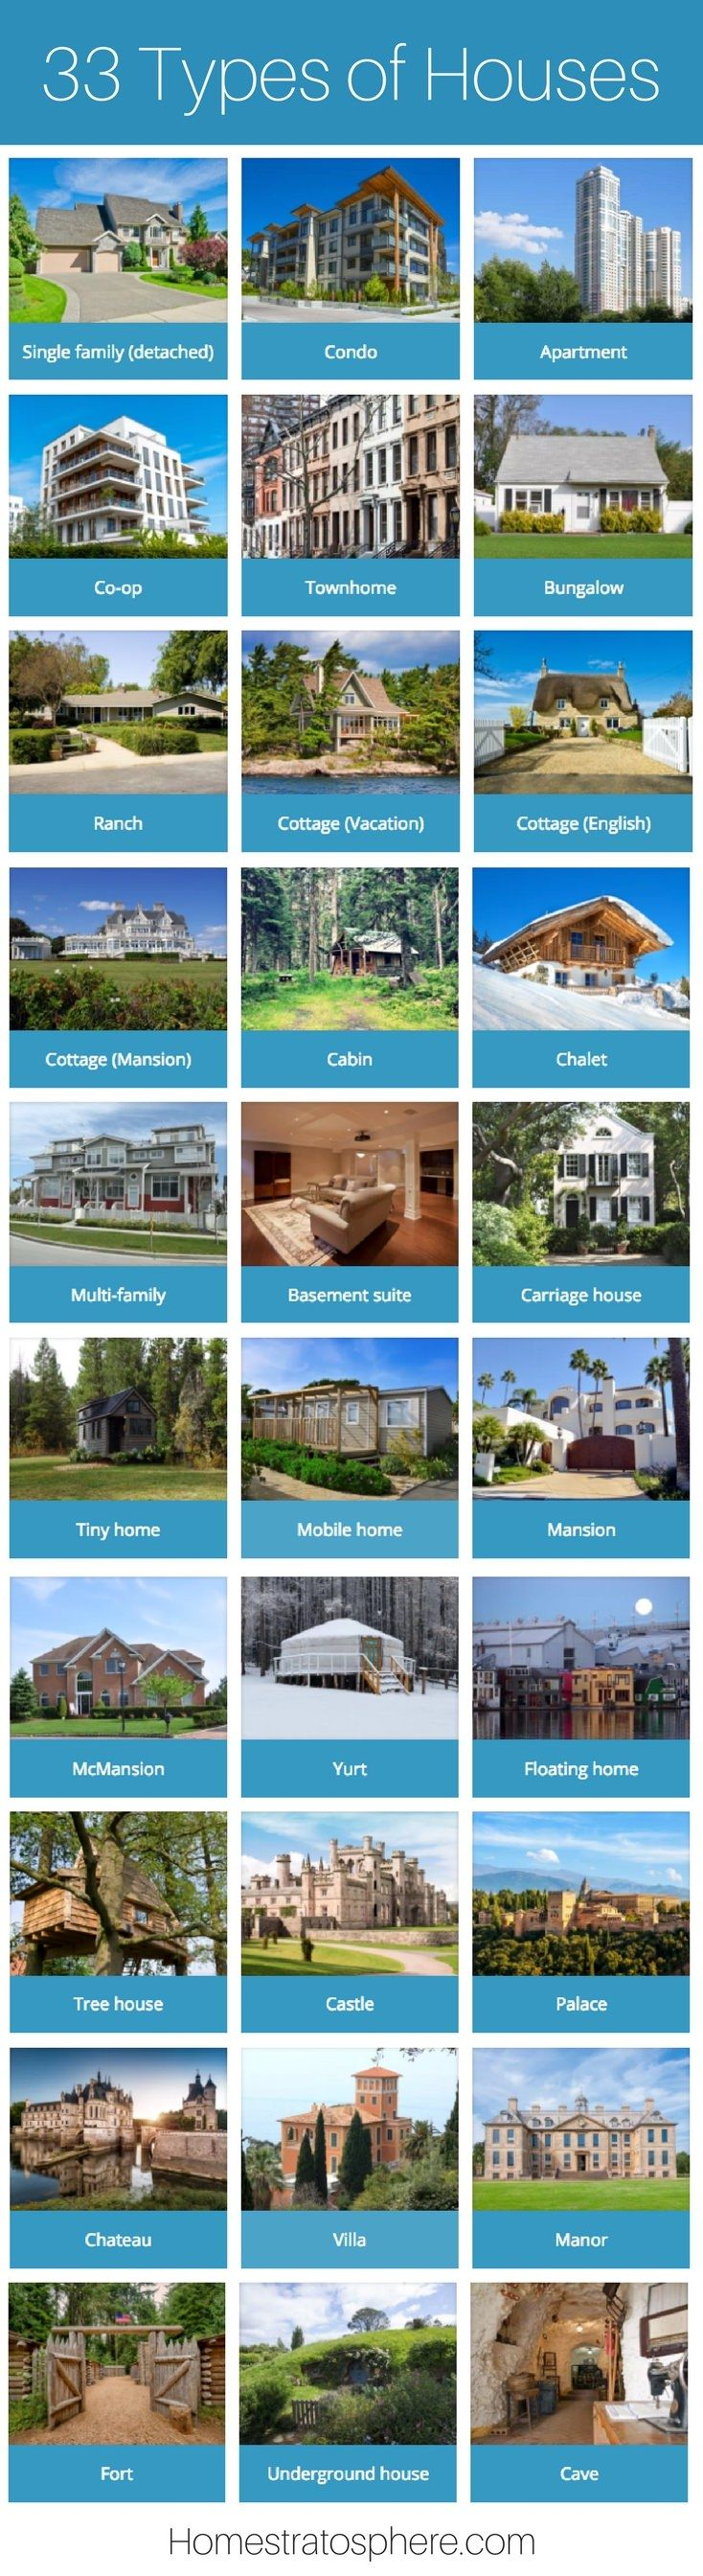 35 Different Types of Houses (with Photos) | Home architecture styles,  House architecture styles, House styles